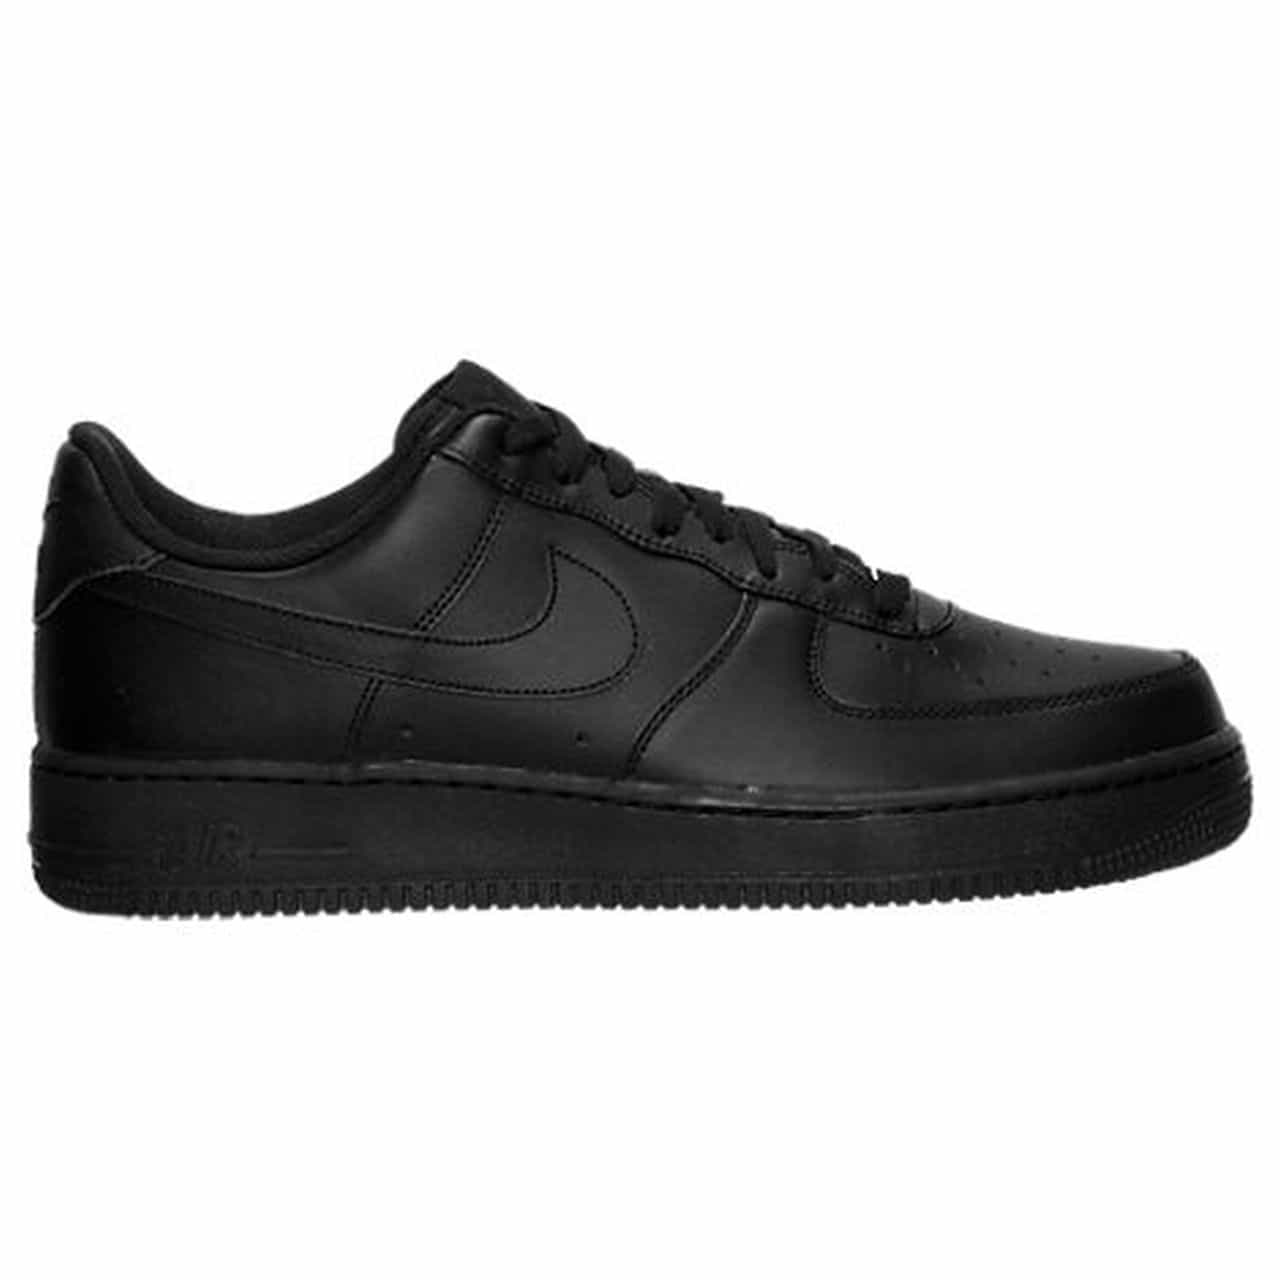 ADIDASI ORIGINALI NIKE AIR FORCE 1 '07 - 315122 001